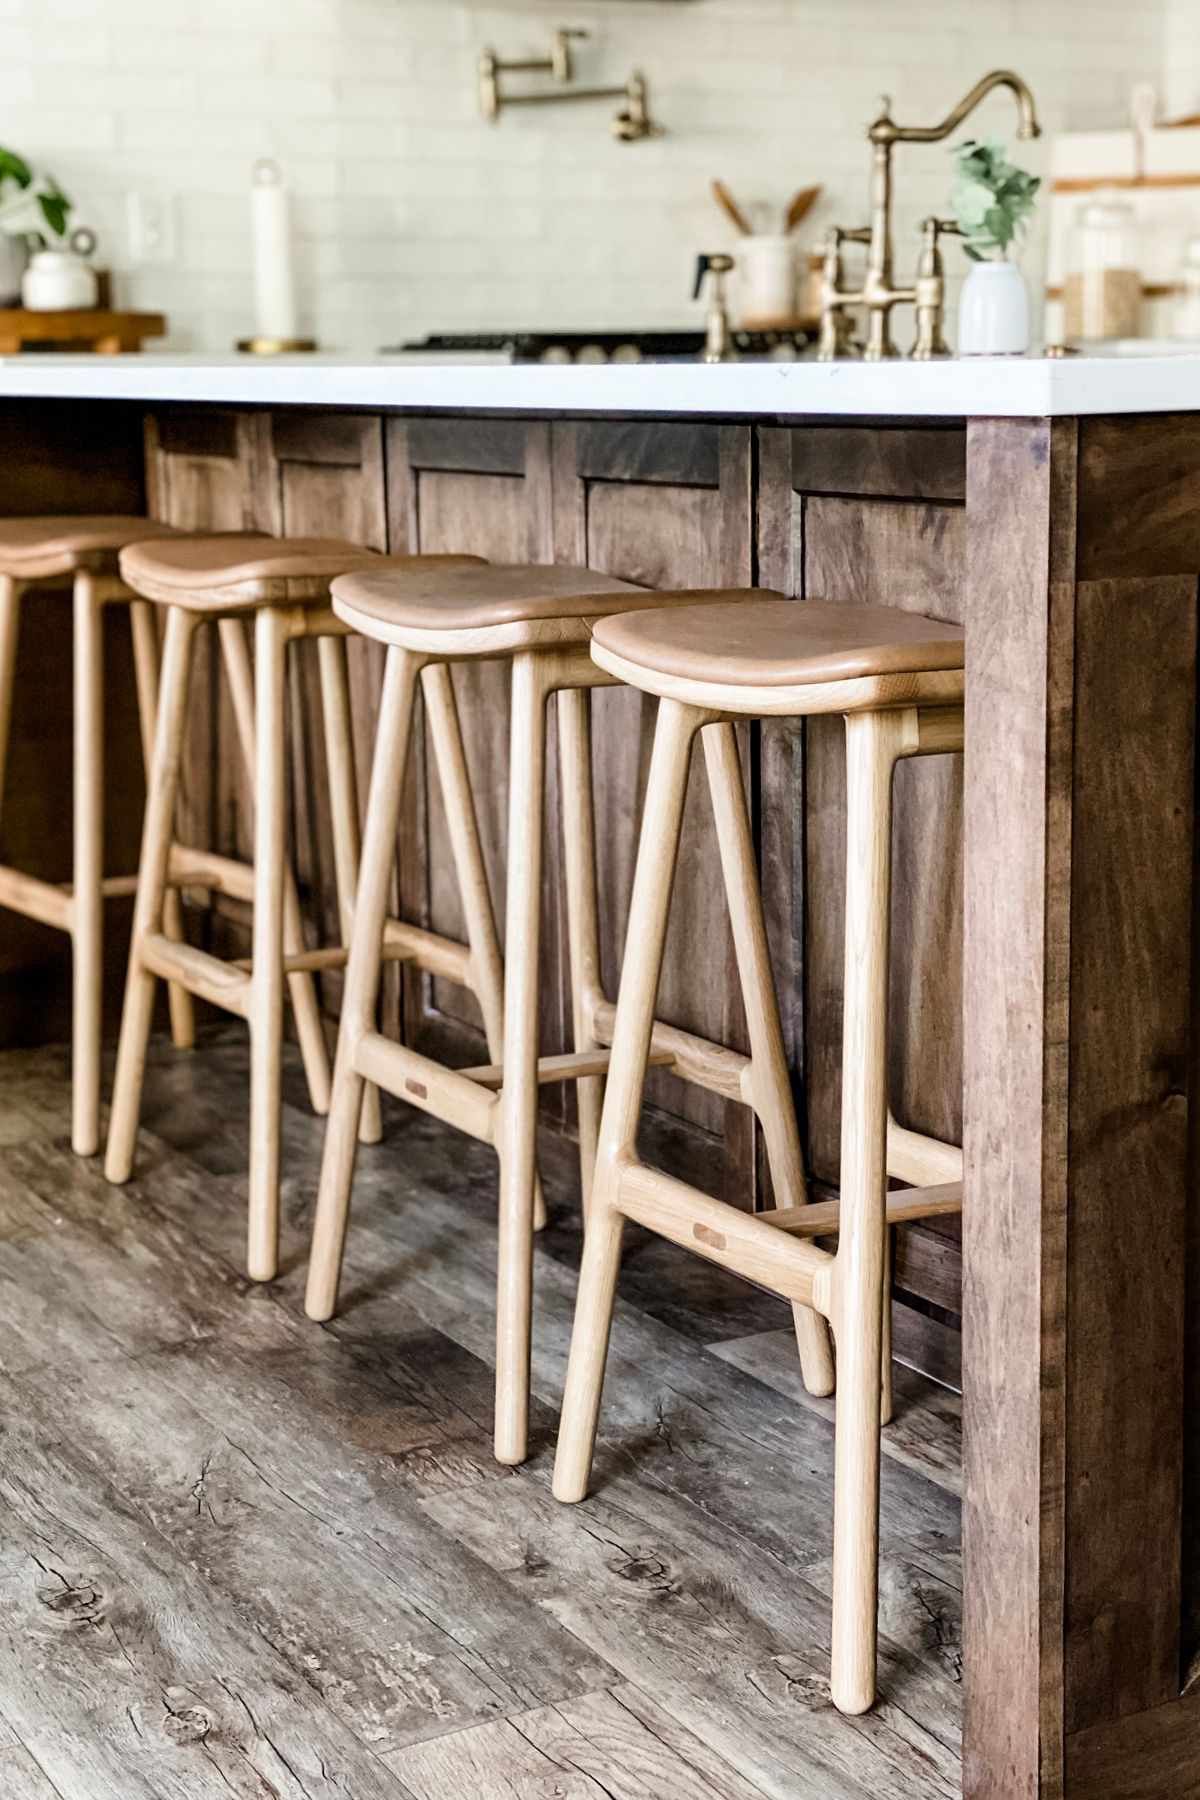 Simple design, steadfast construction. The Esse stool is ...